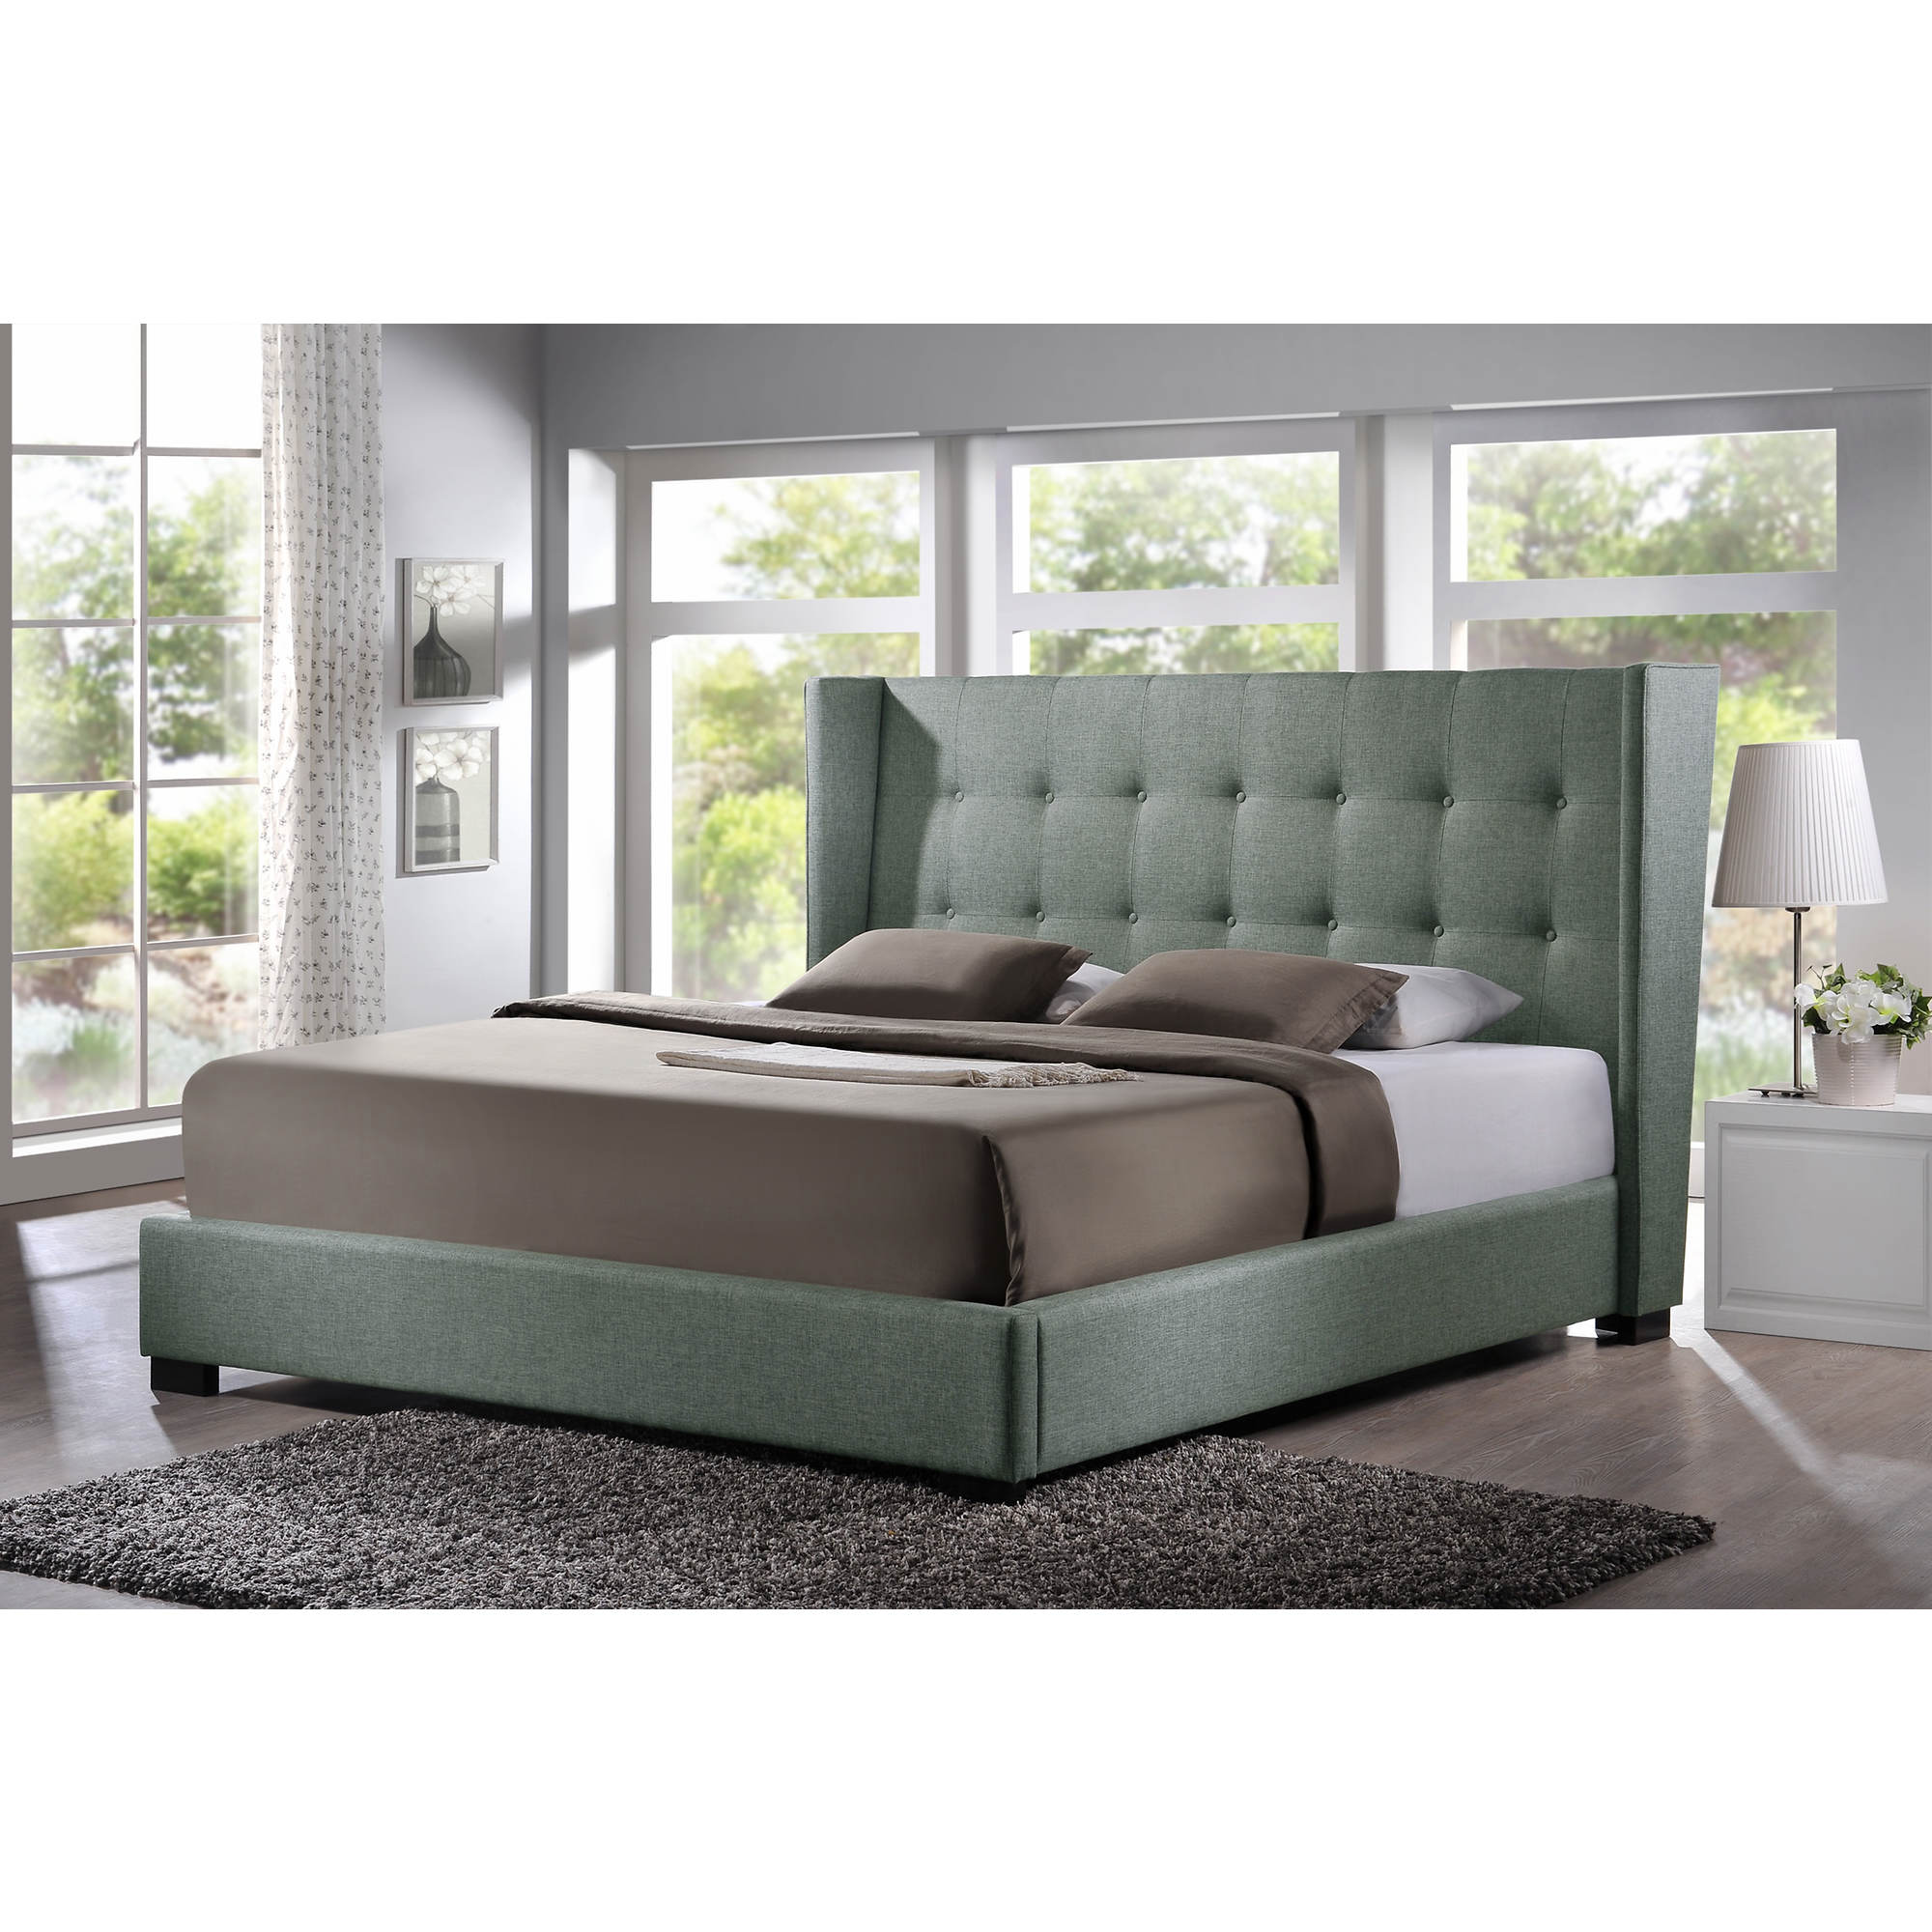 Baxton Studio Favela King Size Platform Bed With